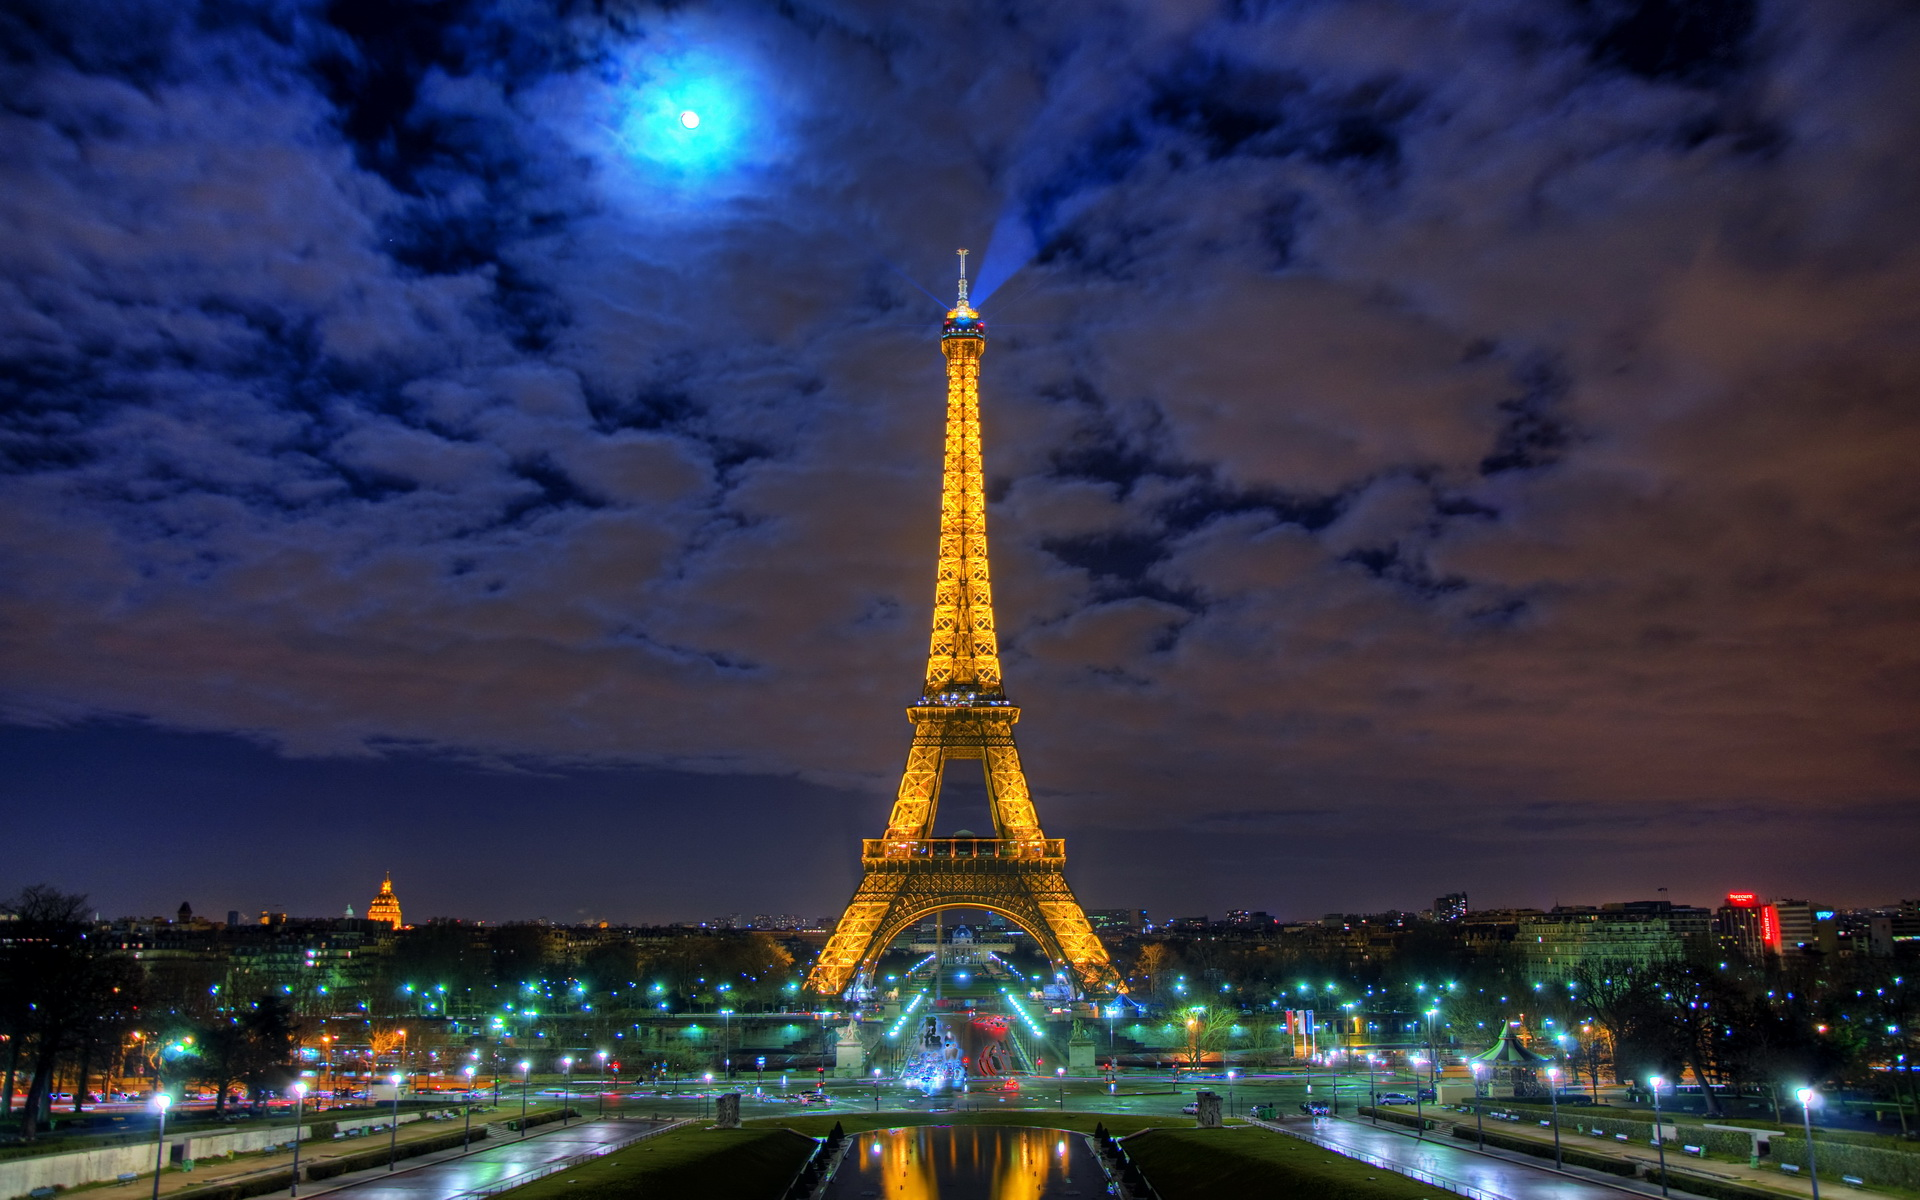 Eiffel tower hd wallpaper background image 1920x1200 - Paris eiffel tower desktop wallpaper ...